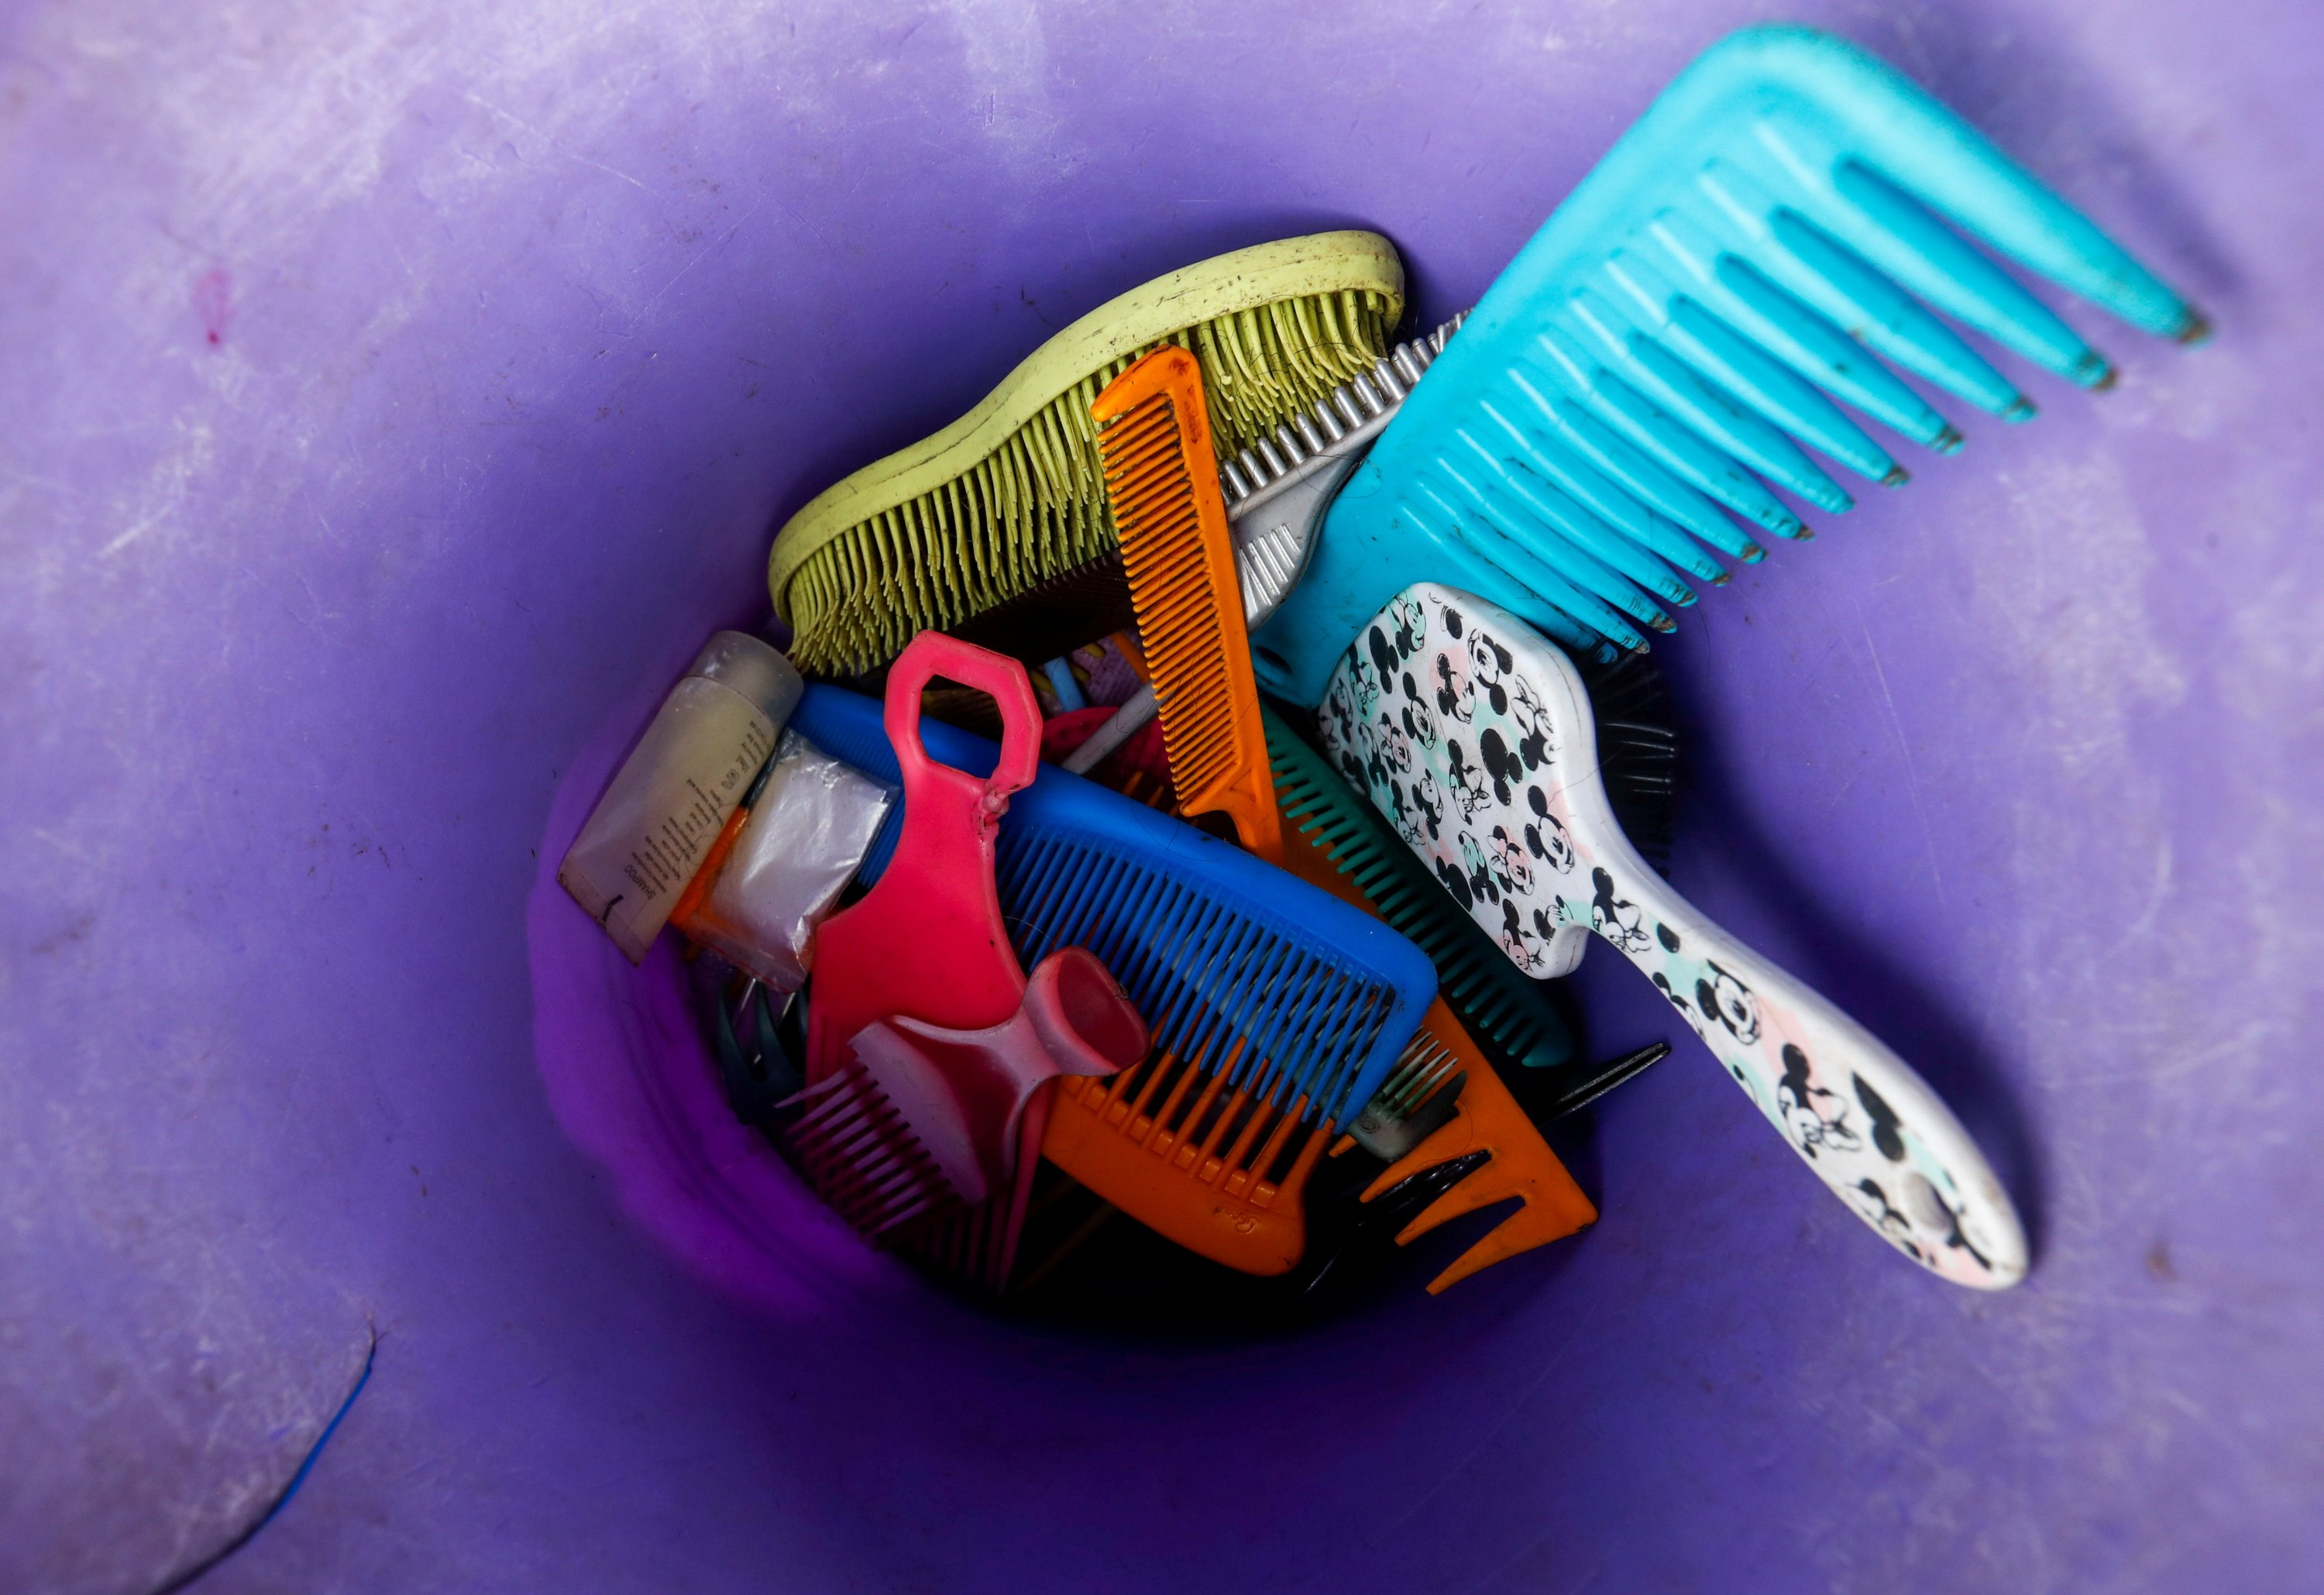 Combs and brushes are seen at a makeshift hair salon near the Dandora dumpsite, amid the COVID-19 outbreak in Eastlands Nairobi, Kenya, July 29, 2020. (REUTERS Photo)